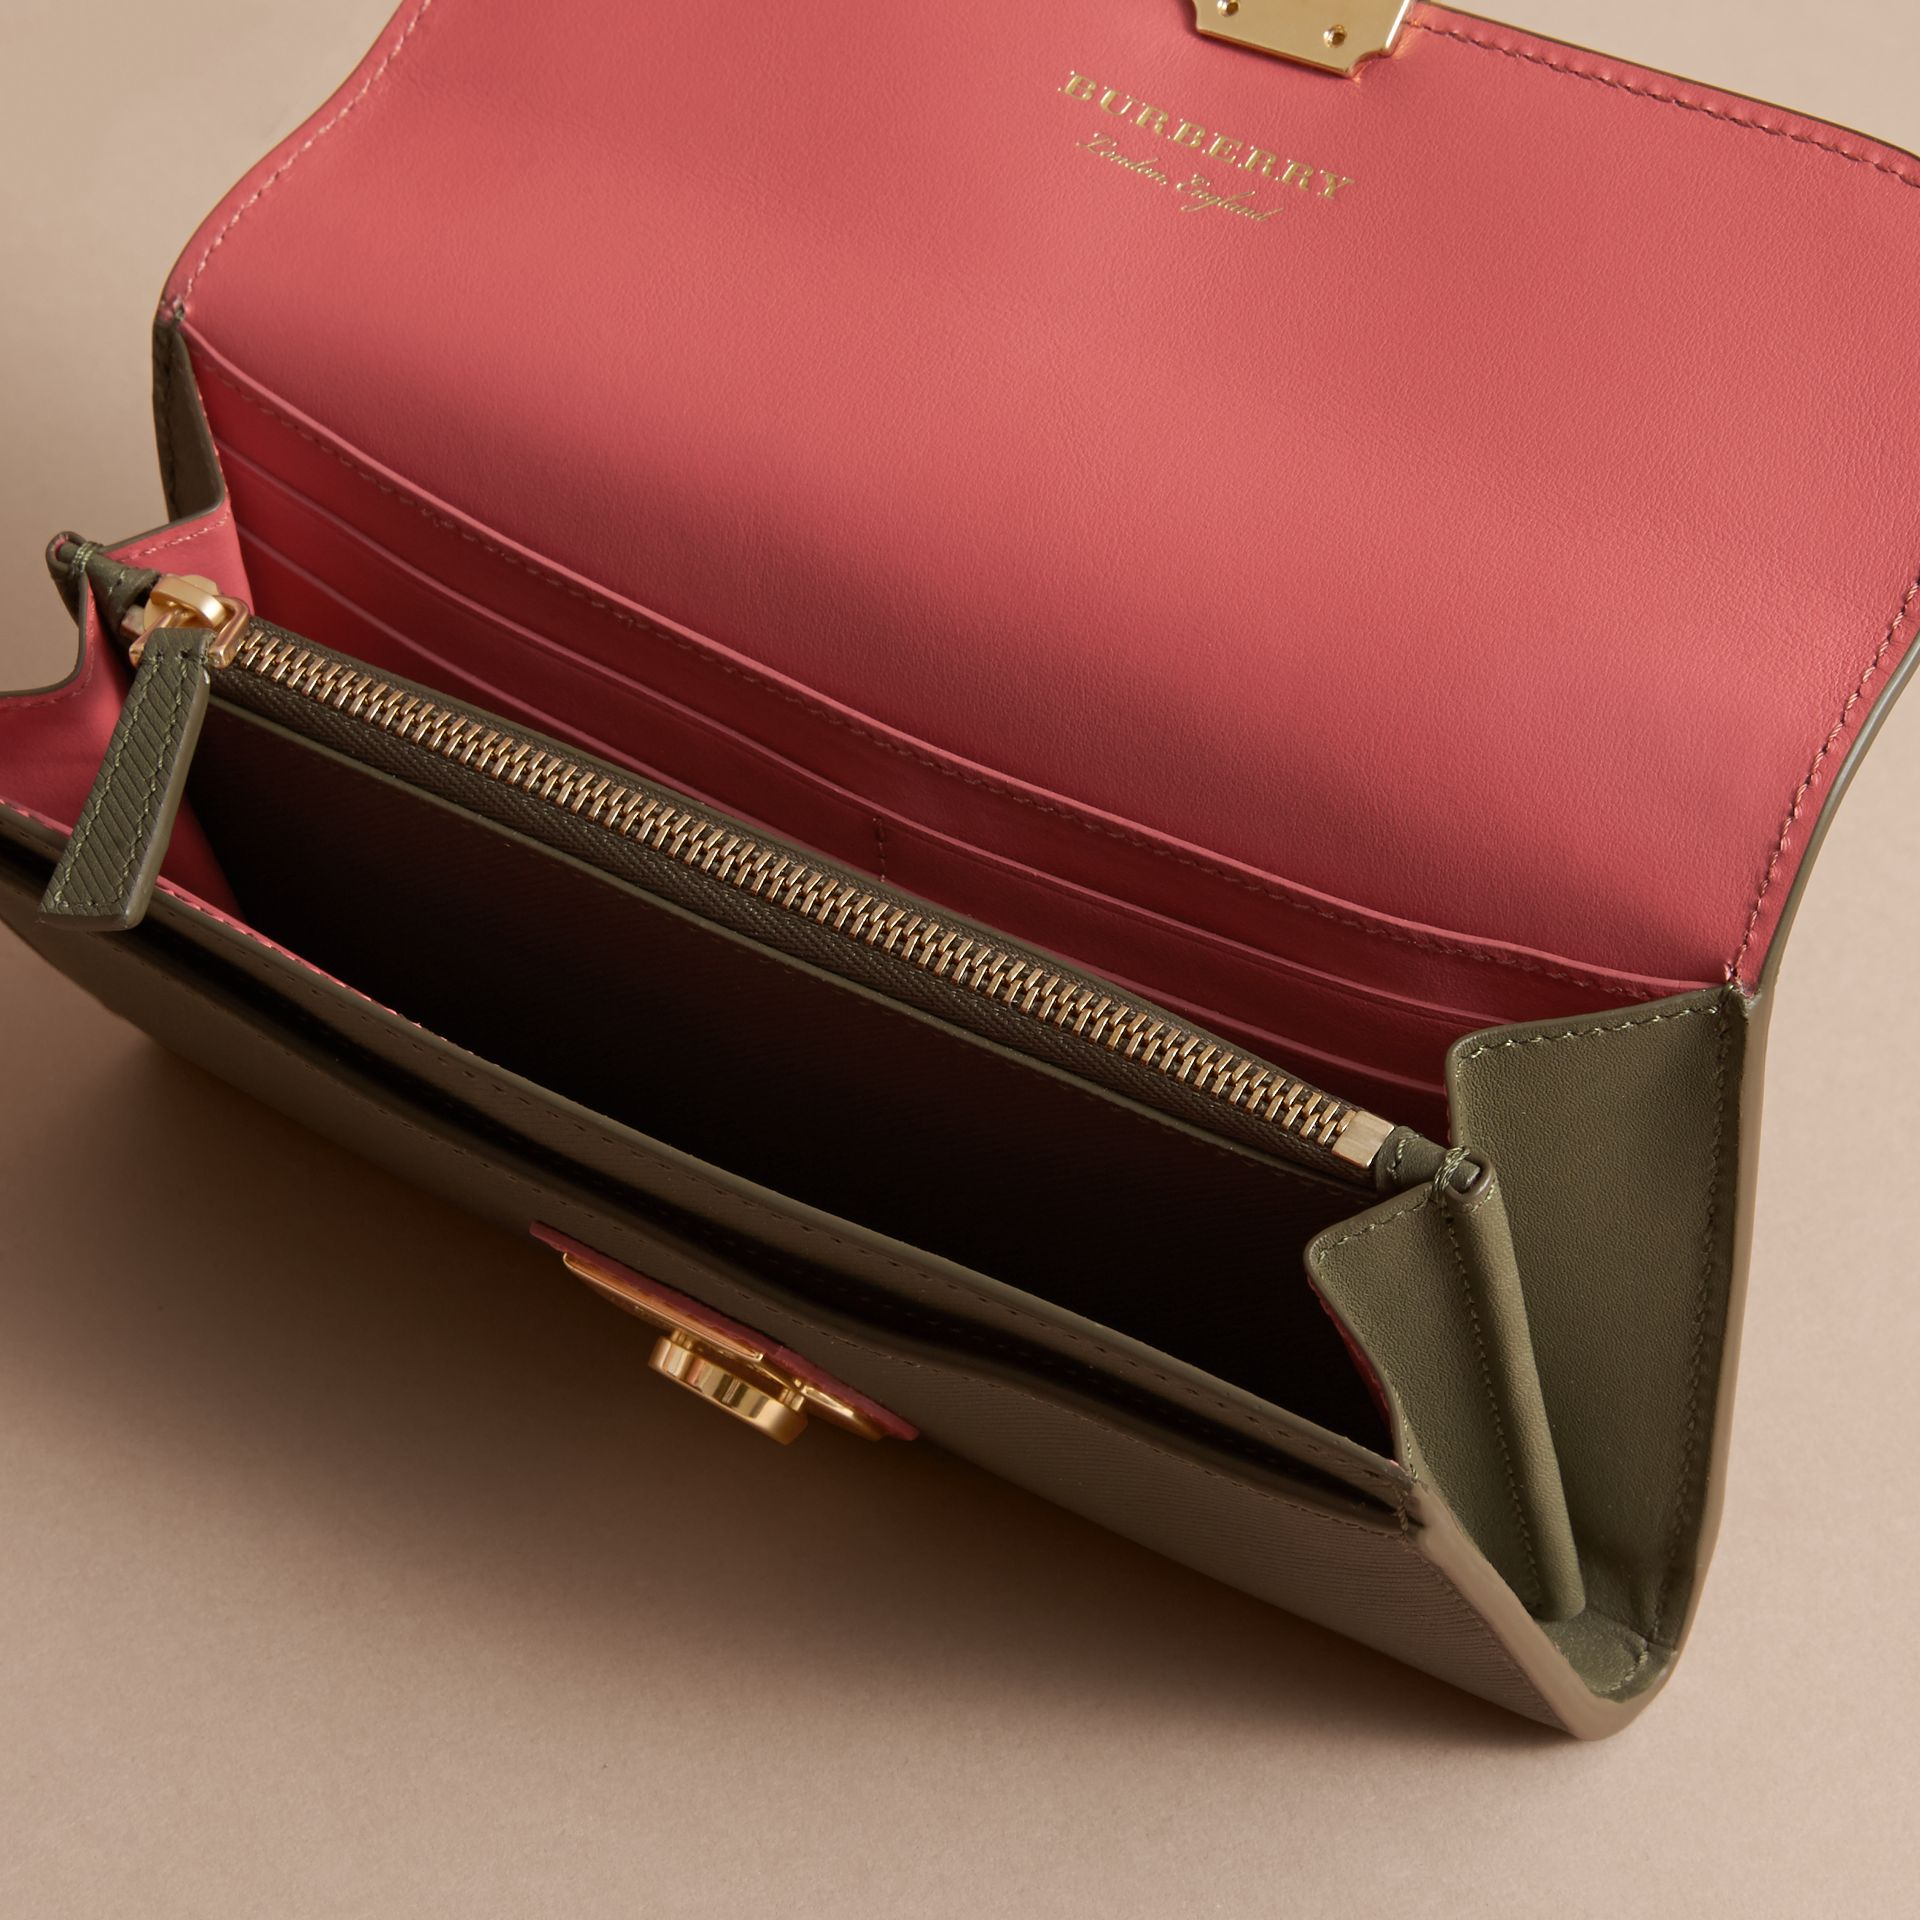 Two-tone Trench Leather Continental Wallet in Moss Green/ Blossom Pink - Women | Burberry - gallery image 5